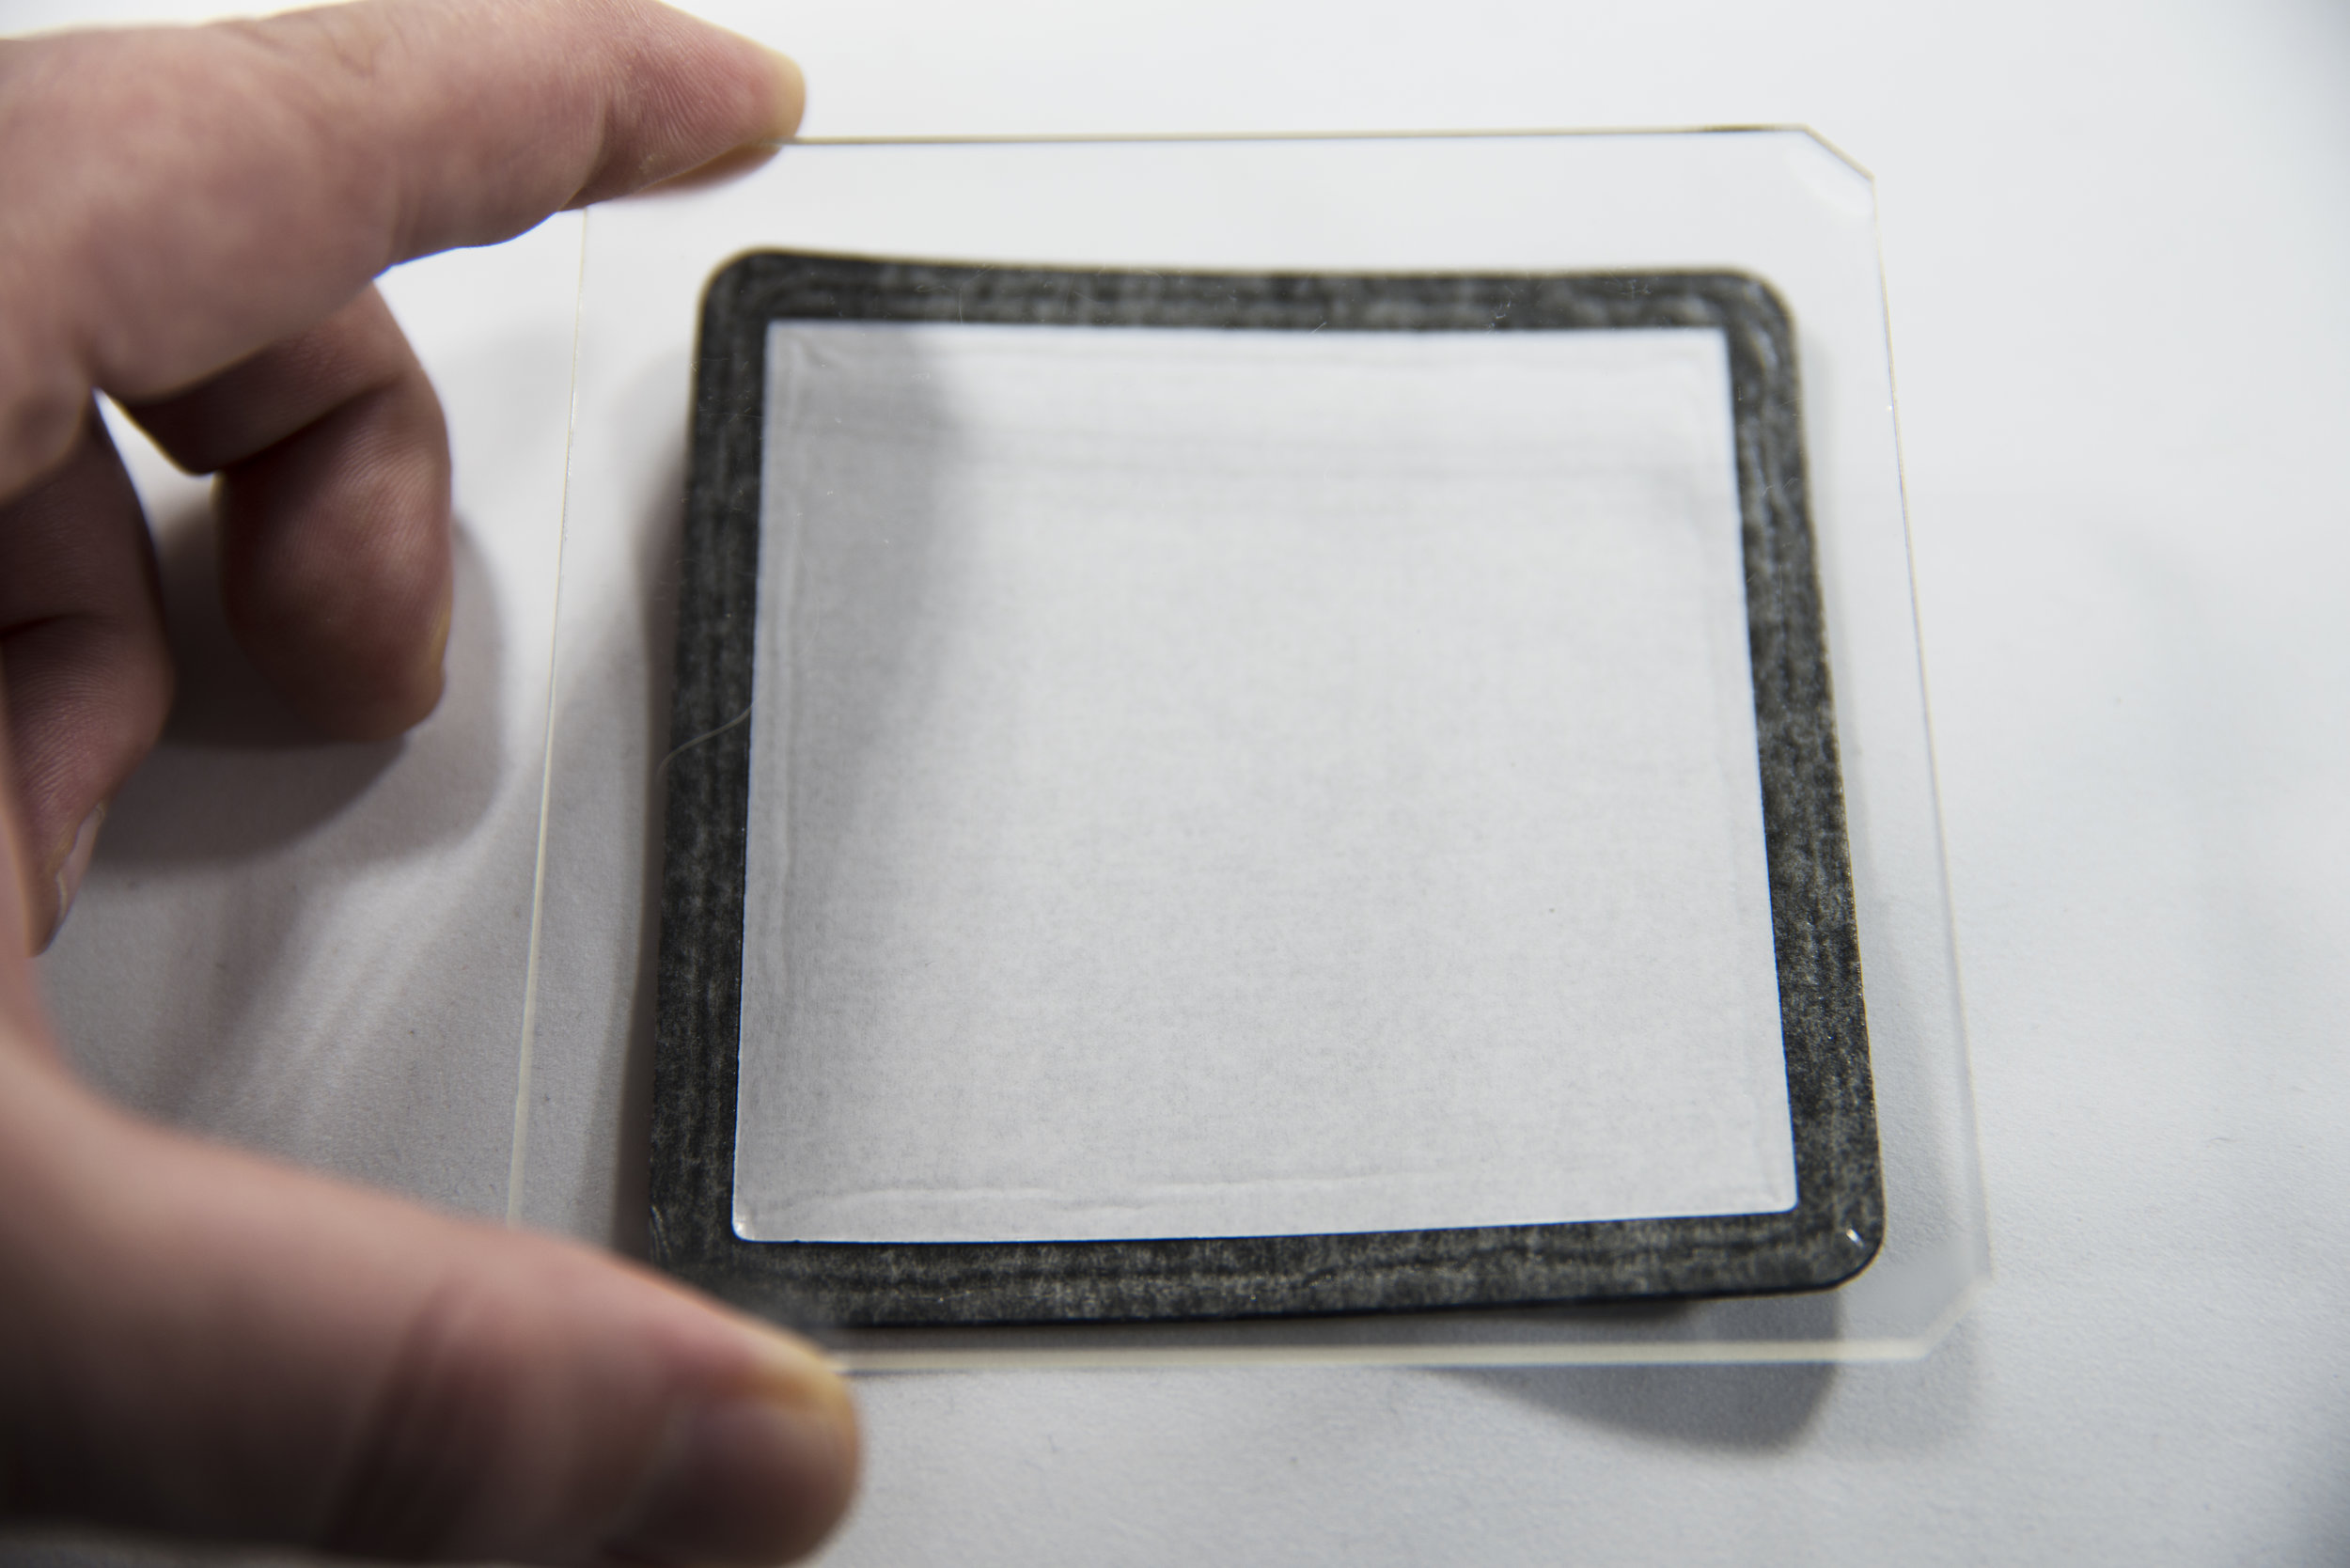 """Visually align the filter above the gasket with the etching on the filter facing upwards and using two hands (I needed a hand free to press the shutter in the shot above) place the filter squarely onto the gasket.  Instinct will tell you to start at one end and """"roll"""" the filter on to the gasket. The problem with this approach is that if you feel the alignment isn't quite right, you will not easily be able to unstick the gasket and start again."""